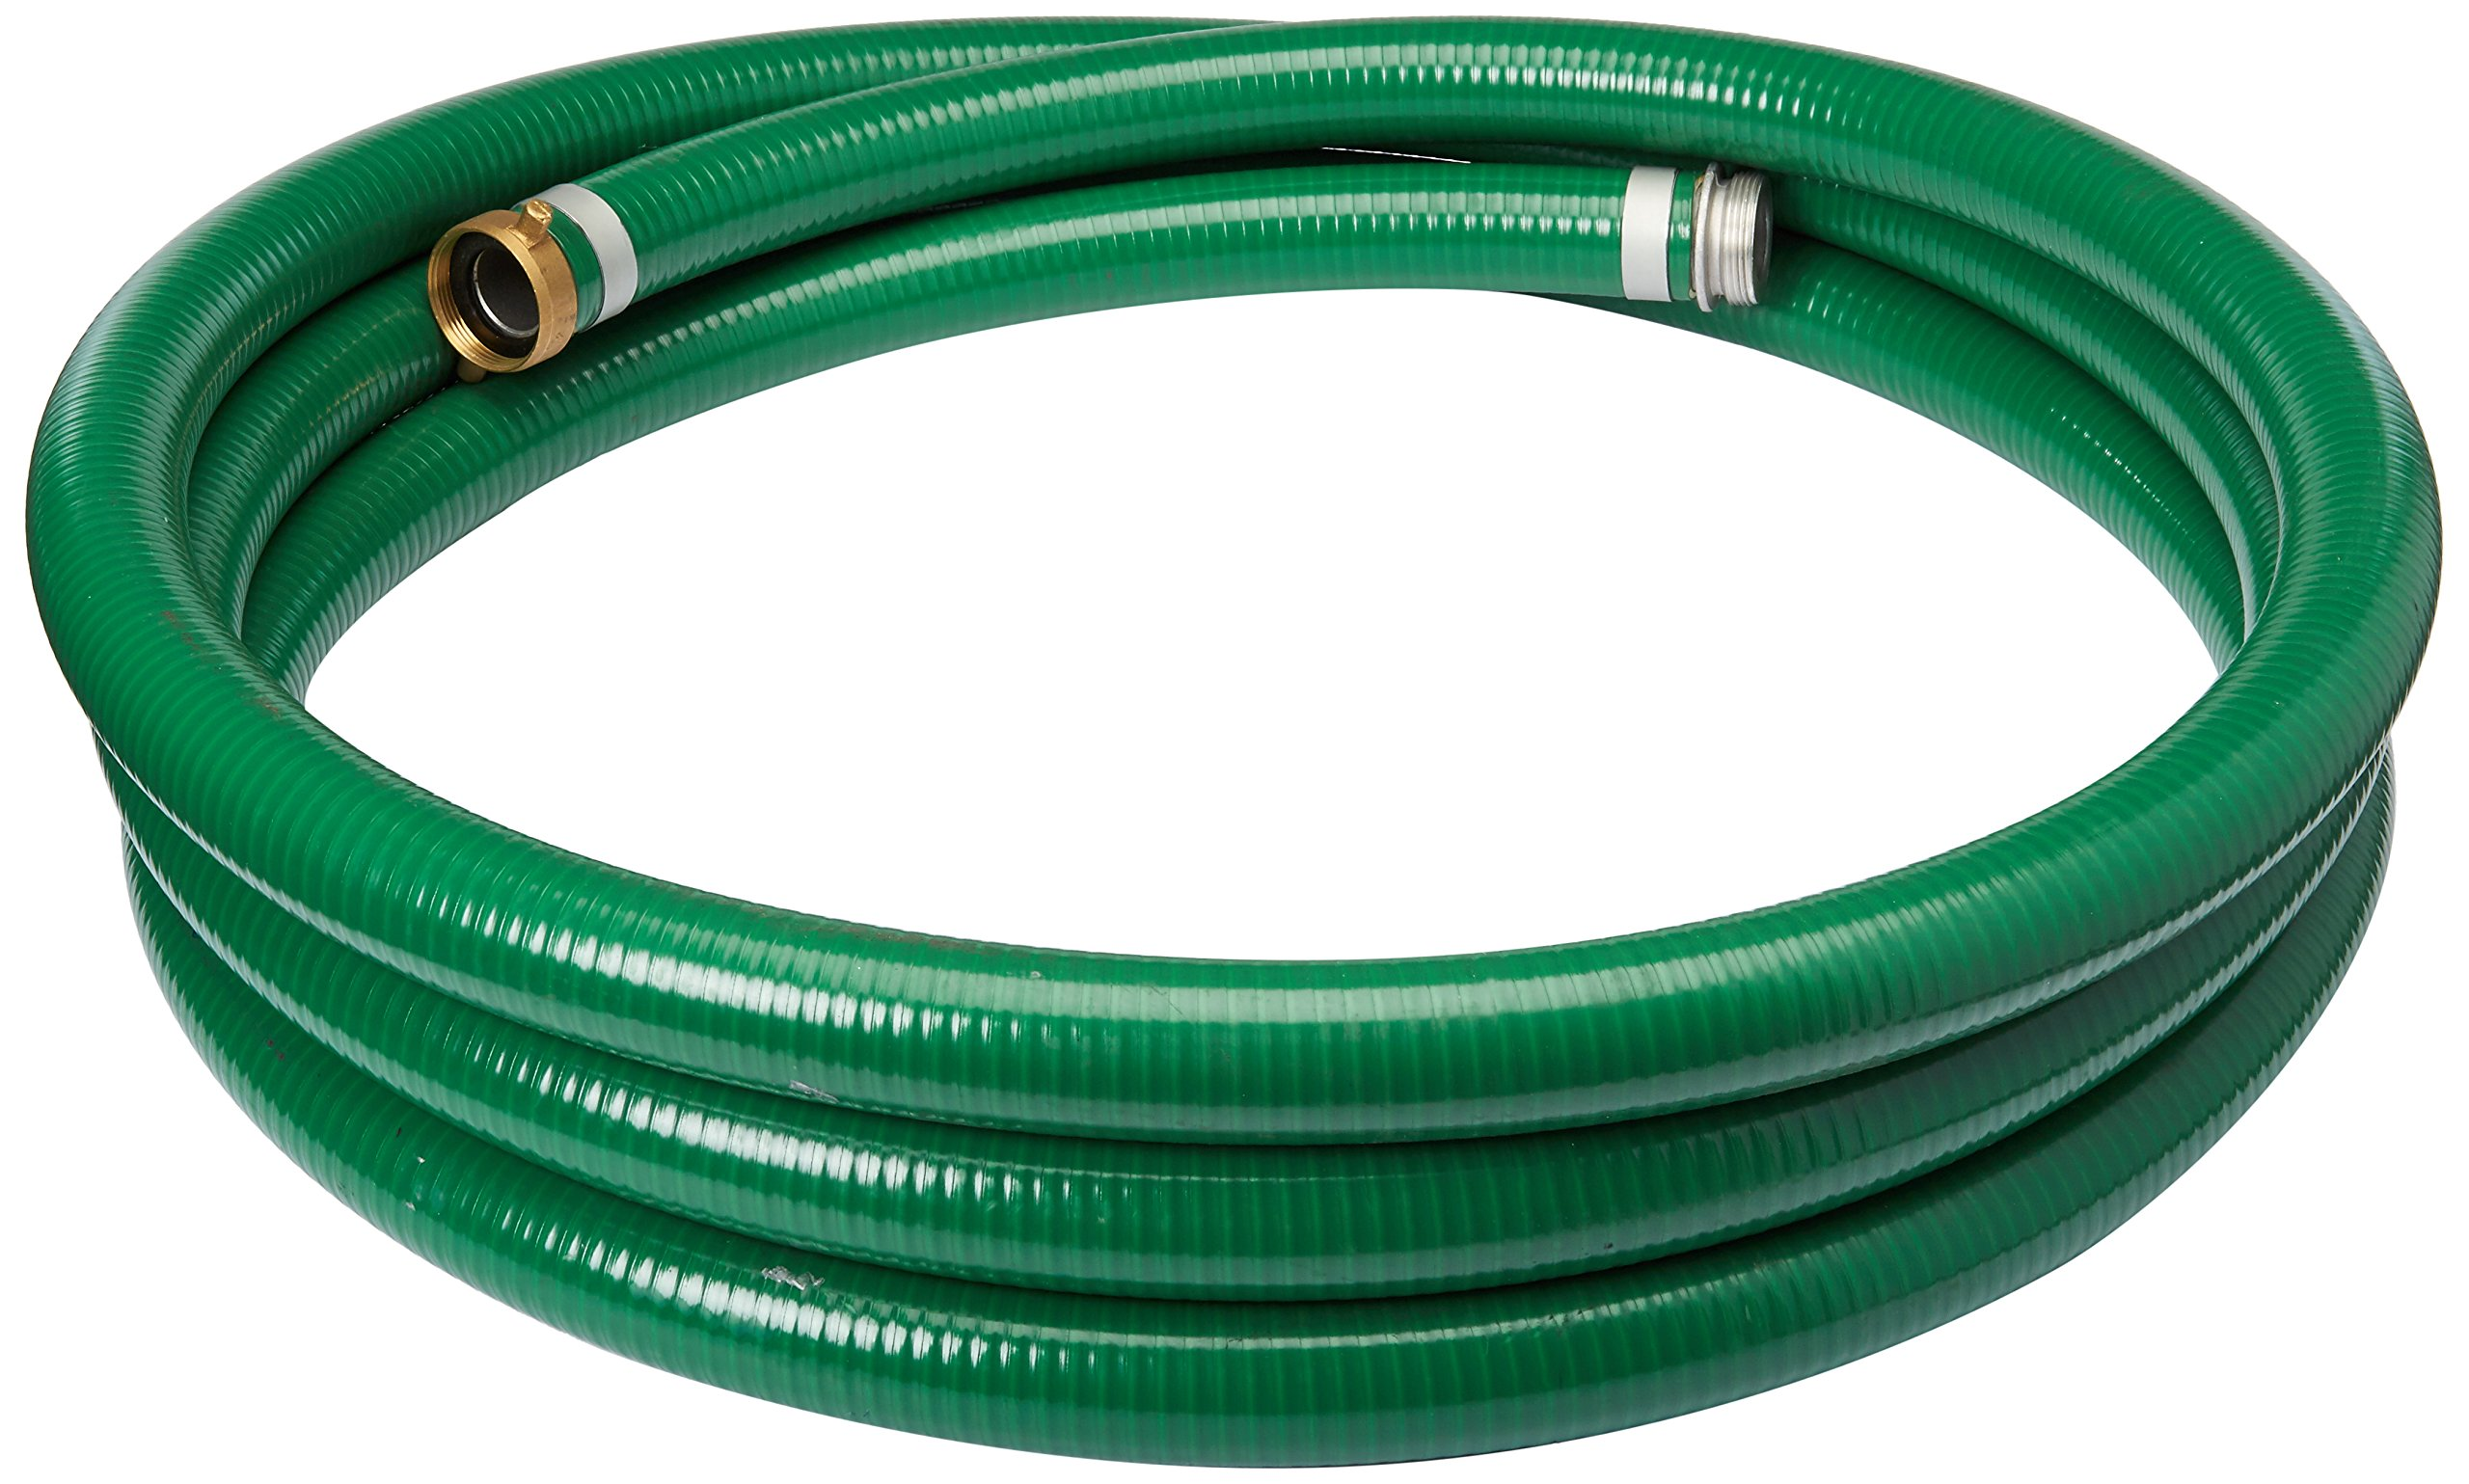 65 psi Max Pressure Abbott Rubber PVC Suction Hose Assembly 2 ID 2 Female Cam and Groove X Male NPT 20/' Length 2 ID 1240-2000-20-CN 20 Length 2 Female Cam and Groove X Male NPT Green